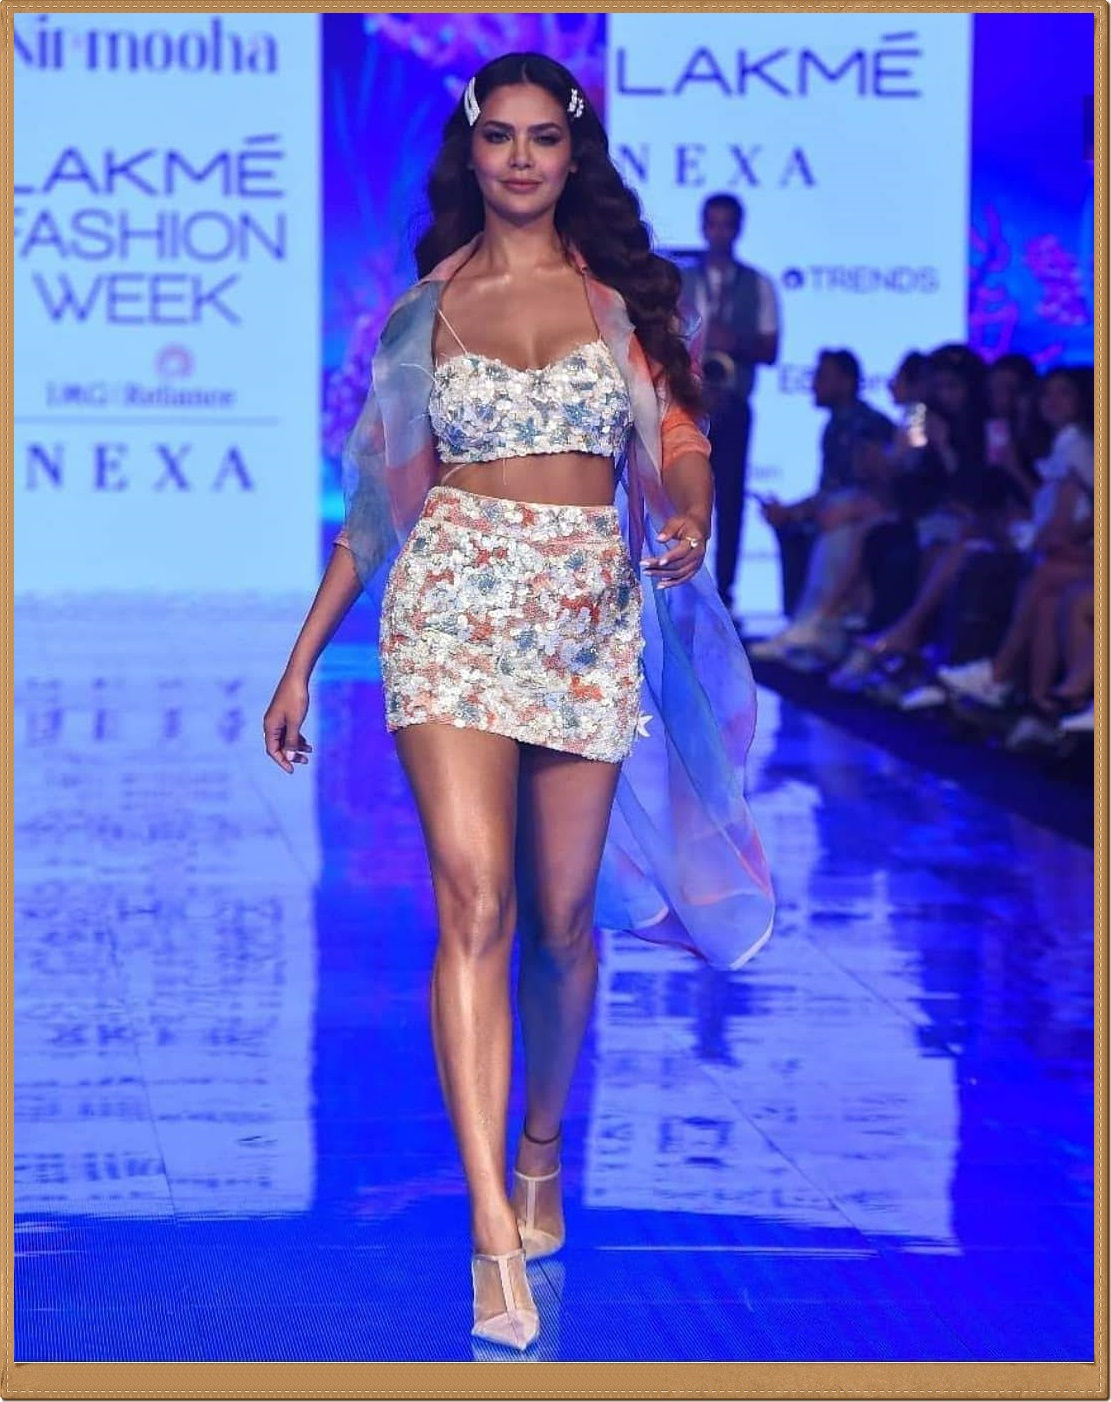 lakme-fashion-week-2020-15